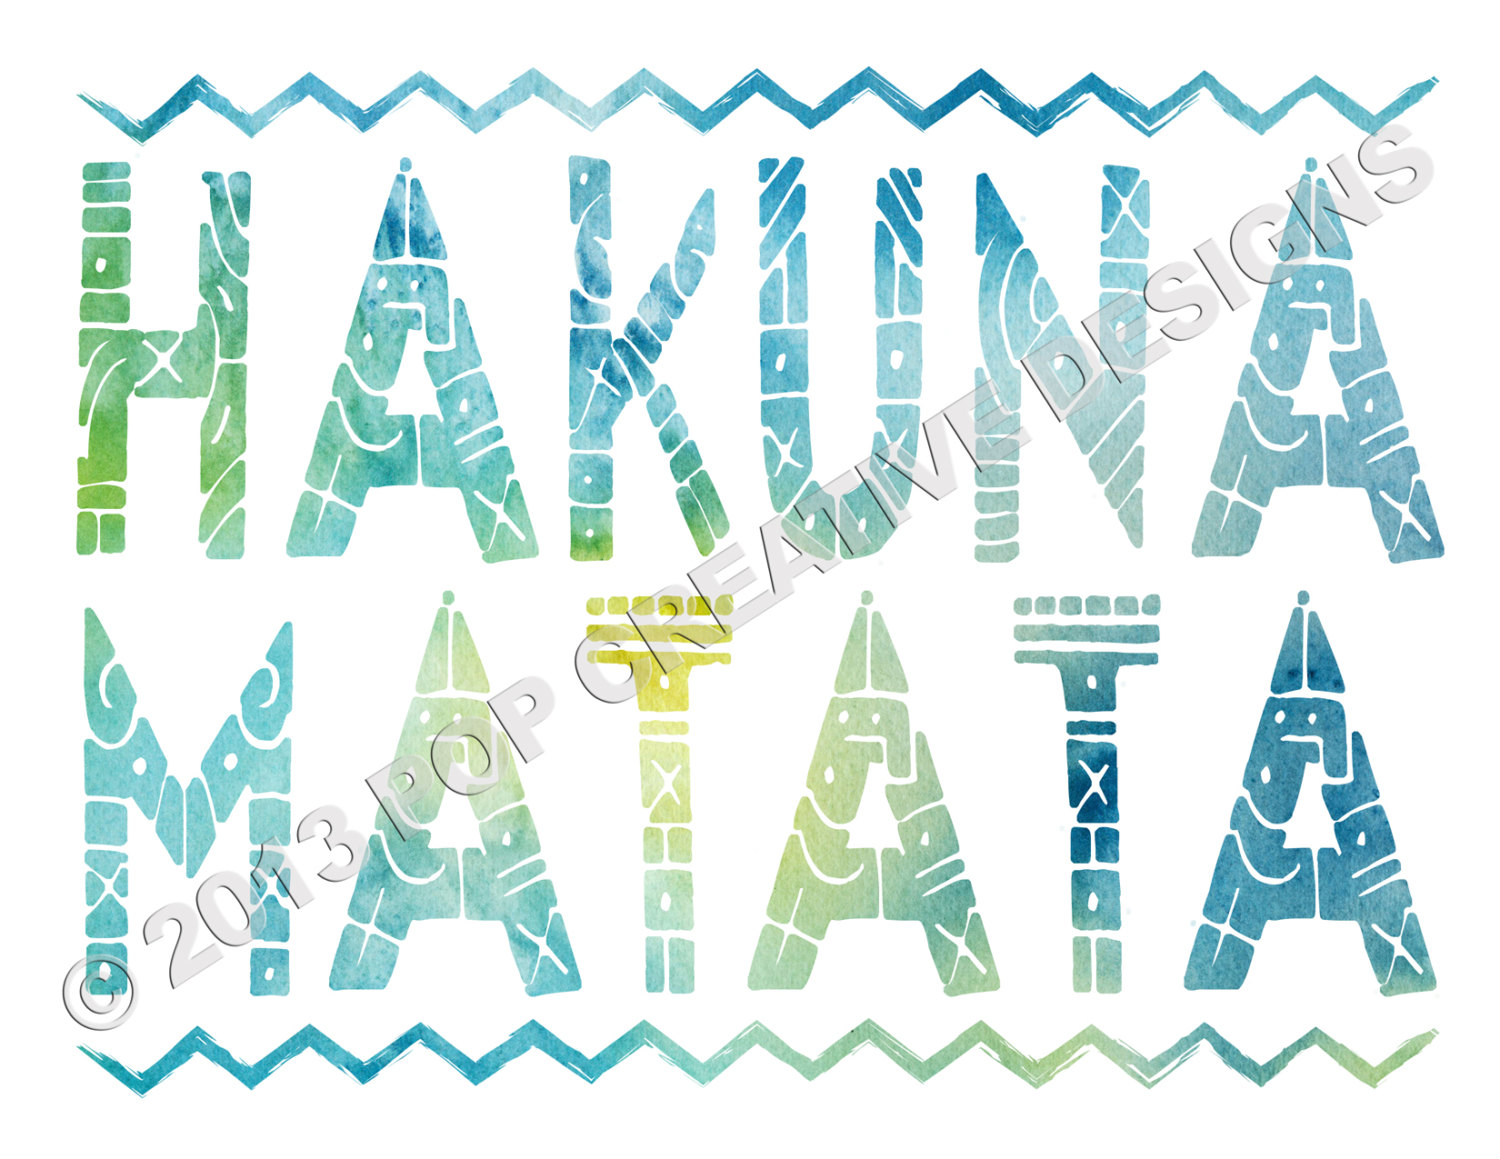 Gallery For gt Hakuna Matata Tribal Wallpaper 1500x1159